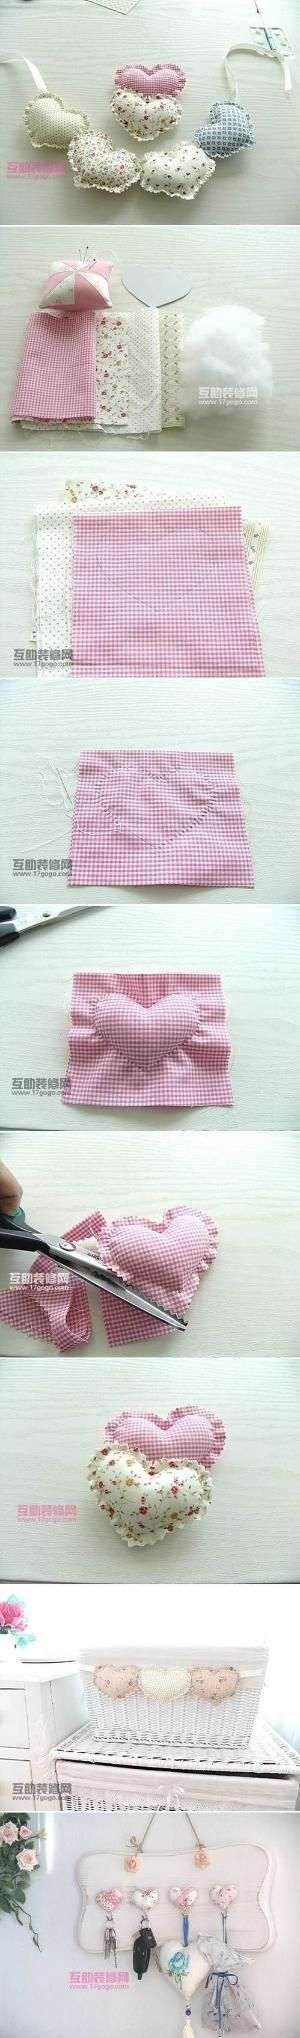 DIY Fabric Heart Pendant by tiquis-miquis